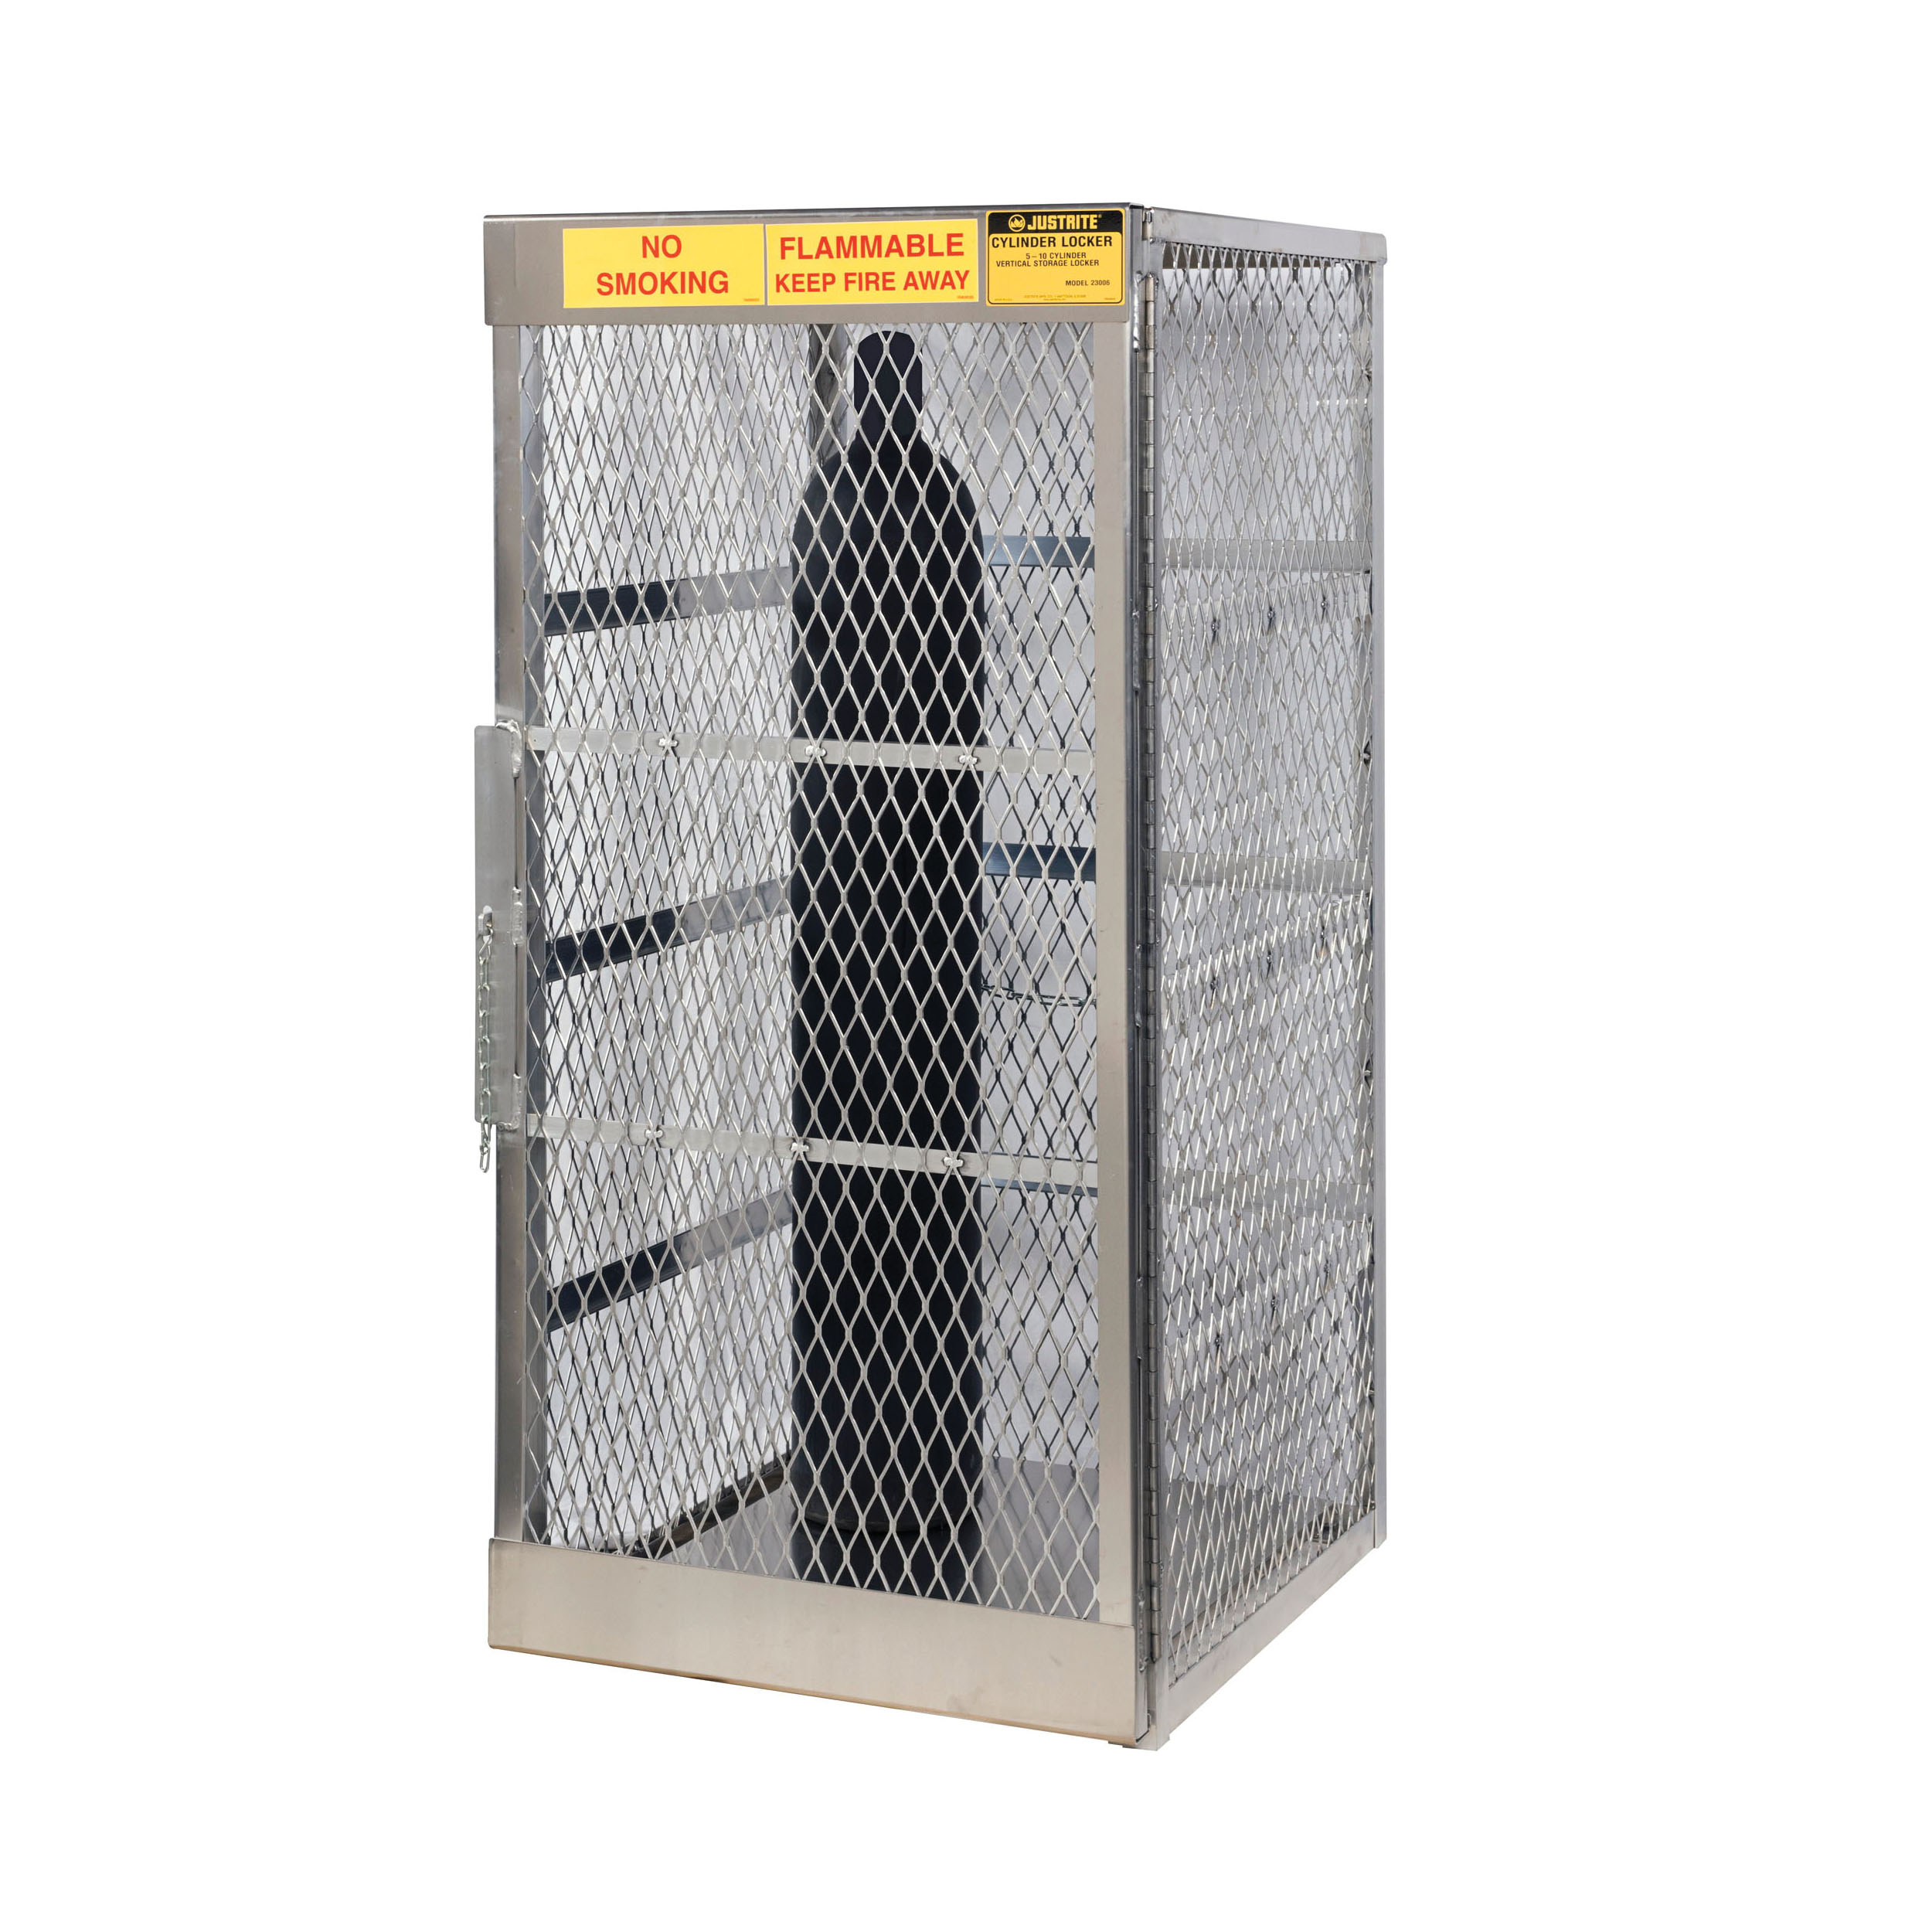 Justrite® 23006 Vertical Compressed Gas Cylinder Locker, Up to 10 Cylinders, 65 in H x 30 in W x 32 in D, Aluminum Roof, Welded Aluminum, Aluminum